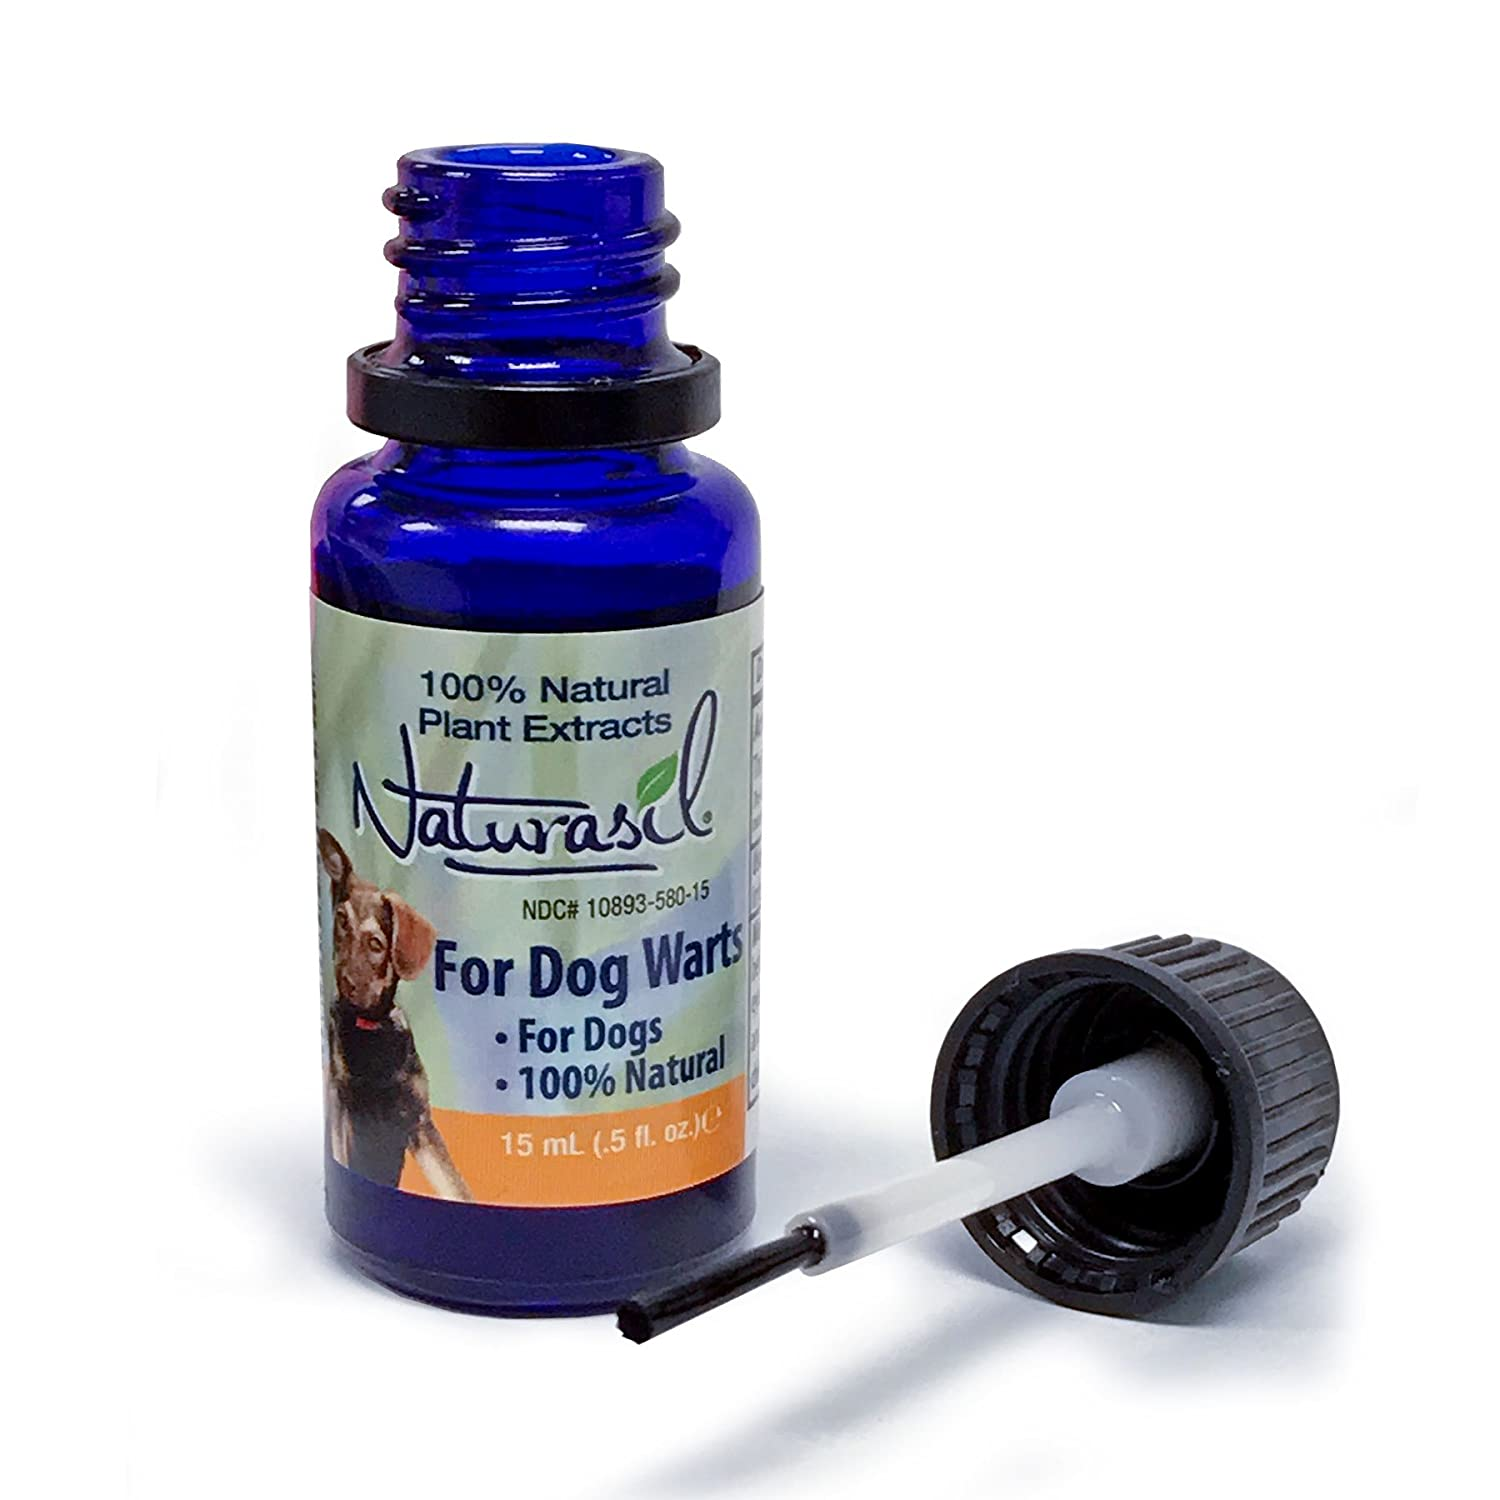 Naturasil Dog Warts Removal Treatment - 100% Natural, No Acids, Animal  Safe, Pain Free - 15mL